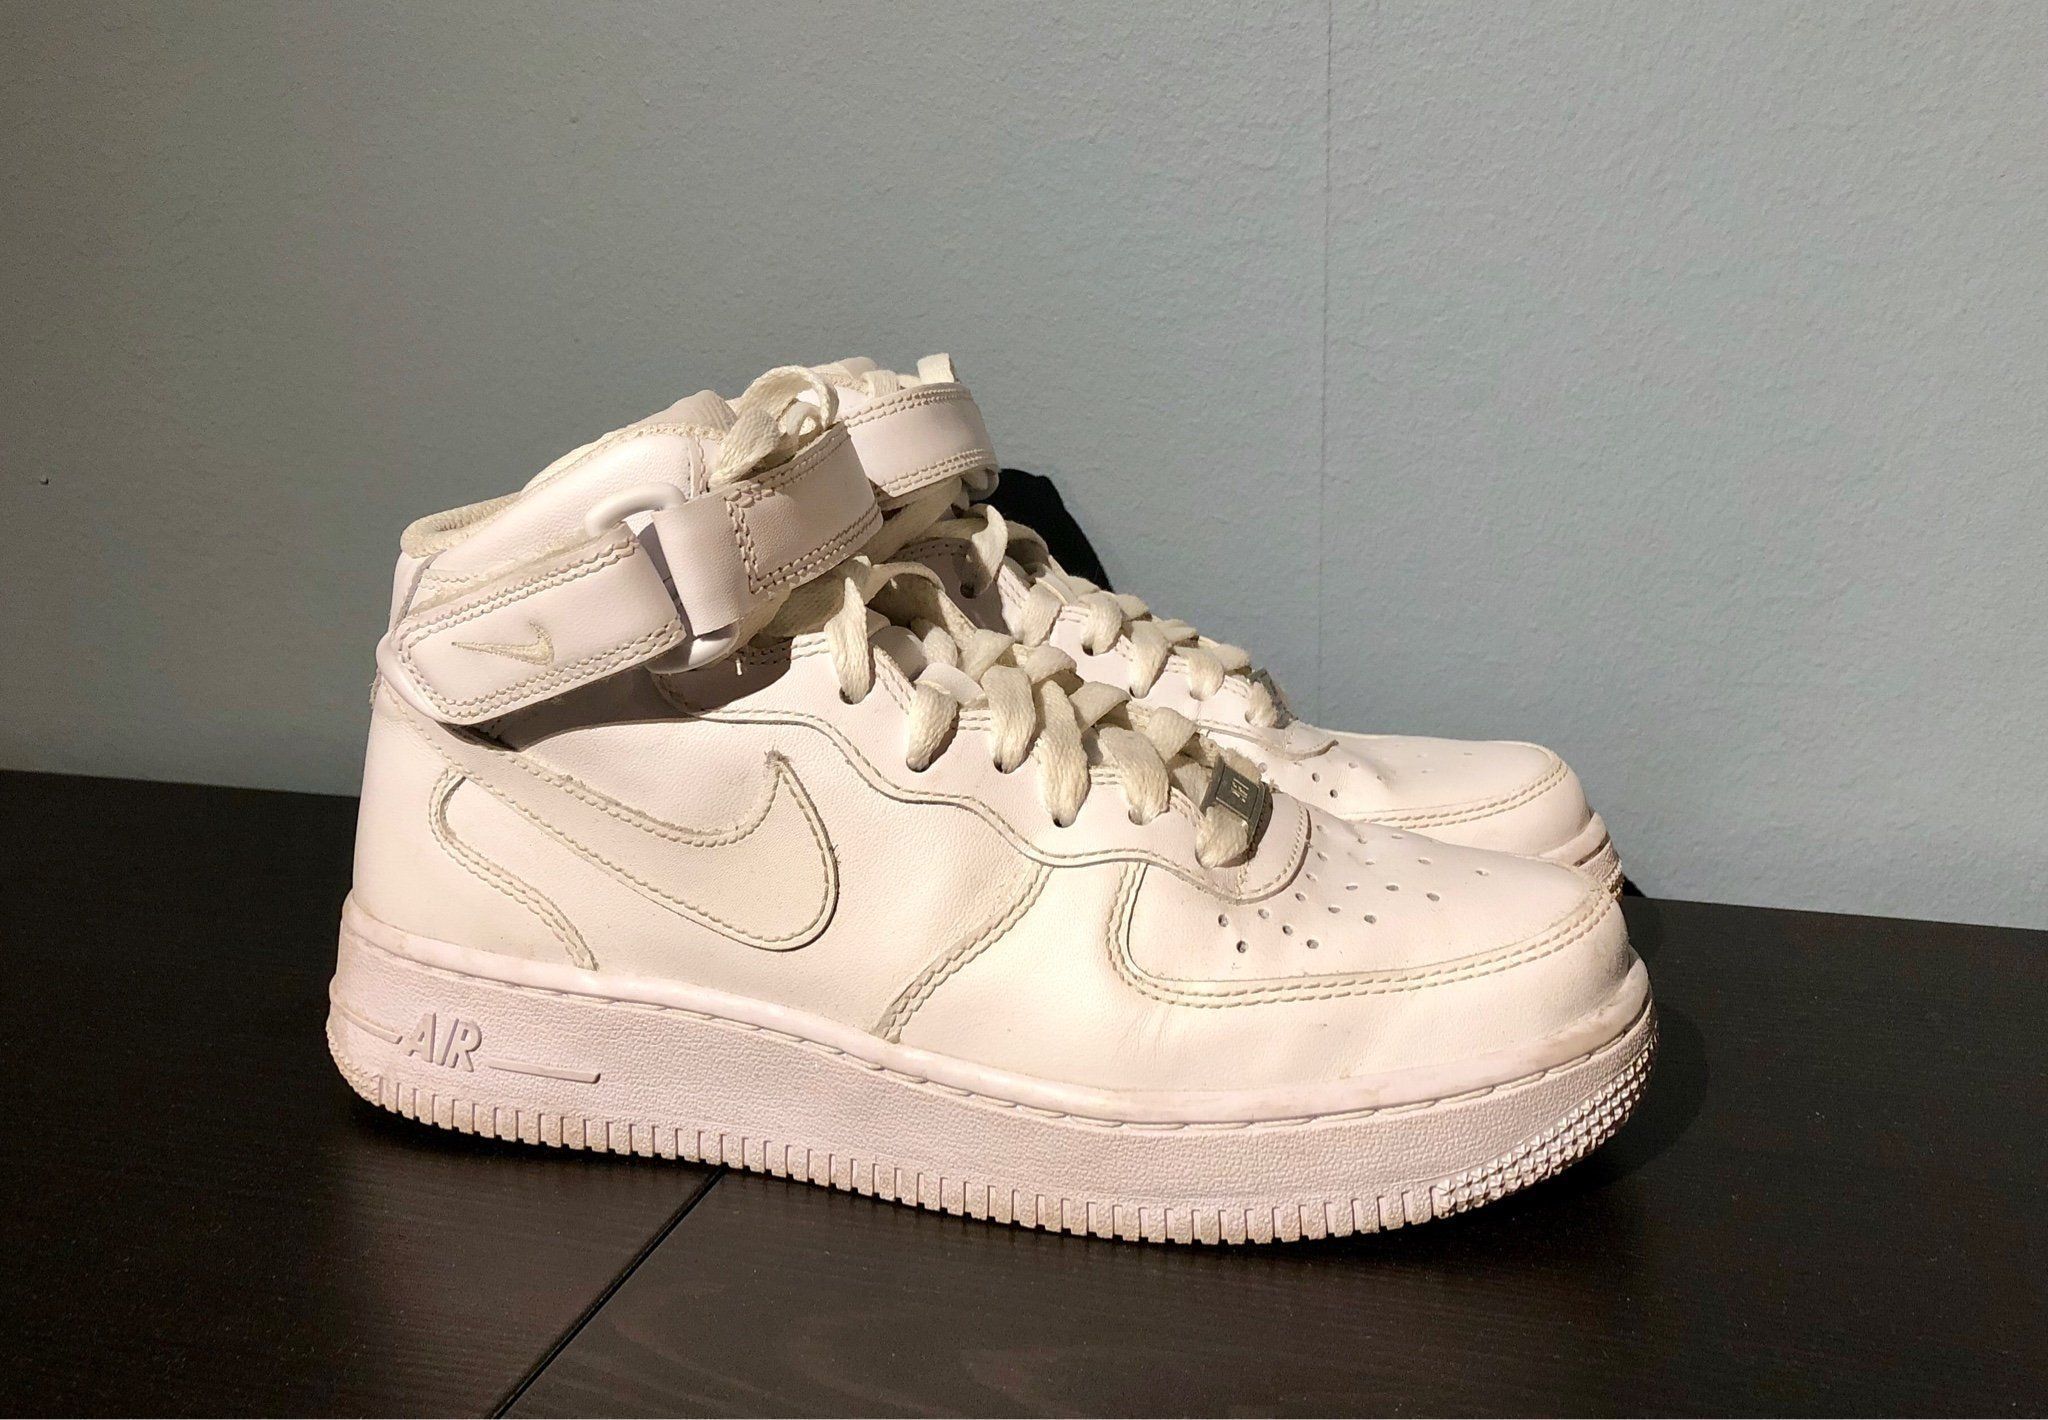 Vita Nike Air Force 1 Mid '07 strl 37,5 (348336924) </p>                     </div> 		  <!--bof Product URL --> 										<!--eof Product URL --> 					<!--bof Quantity Discounts table --> 											<!--eof Quantity Discounts table --> 				</div> 				                       			</dd> 						<dt class=